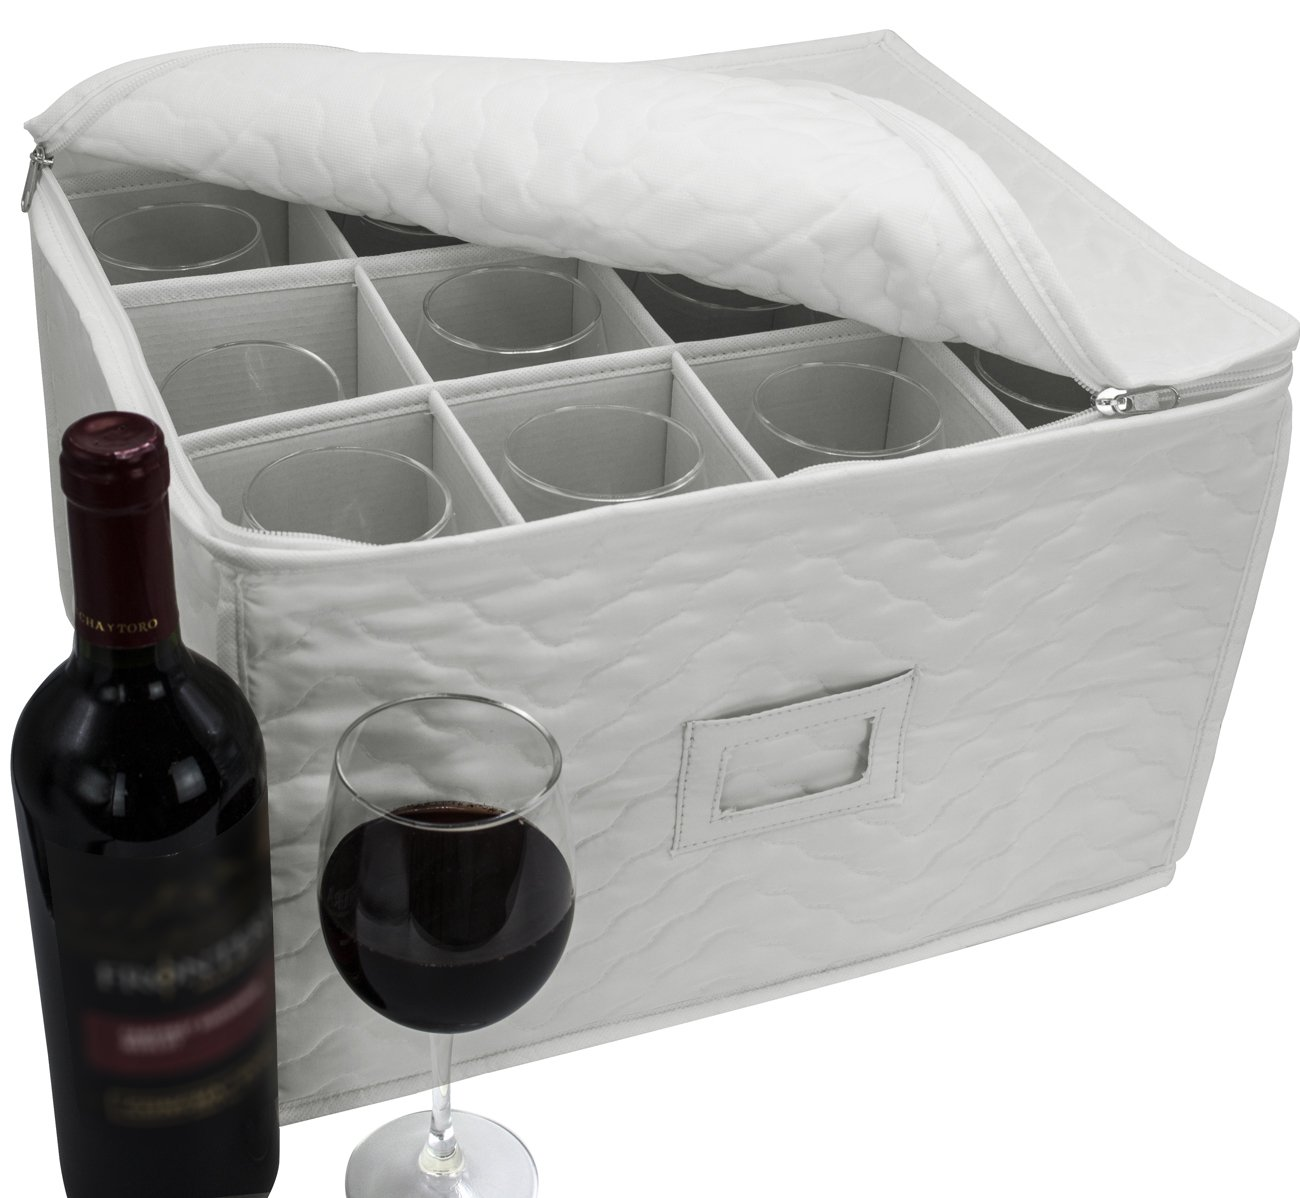 Sorbus Stemware Storage Chest - Deluxe Quilted Case with Dividers - Service for 12 - Great for Protecting or Transporting Wine Glasses, Champagne Flutes, Goblets, and More (Storage Glass - Beige) by Sorbus (Image #1)